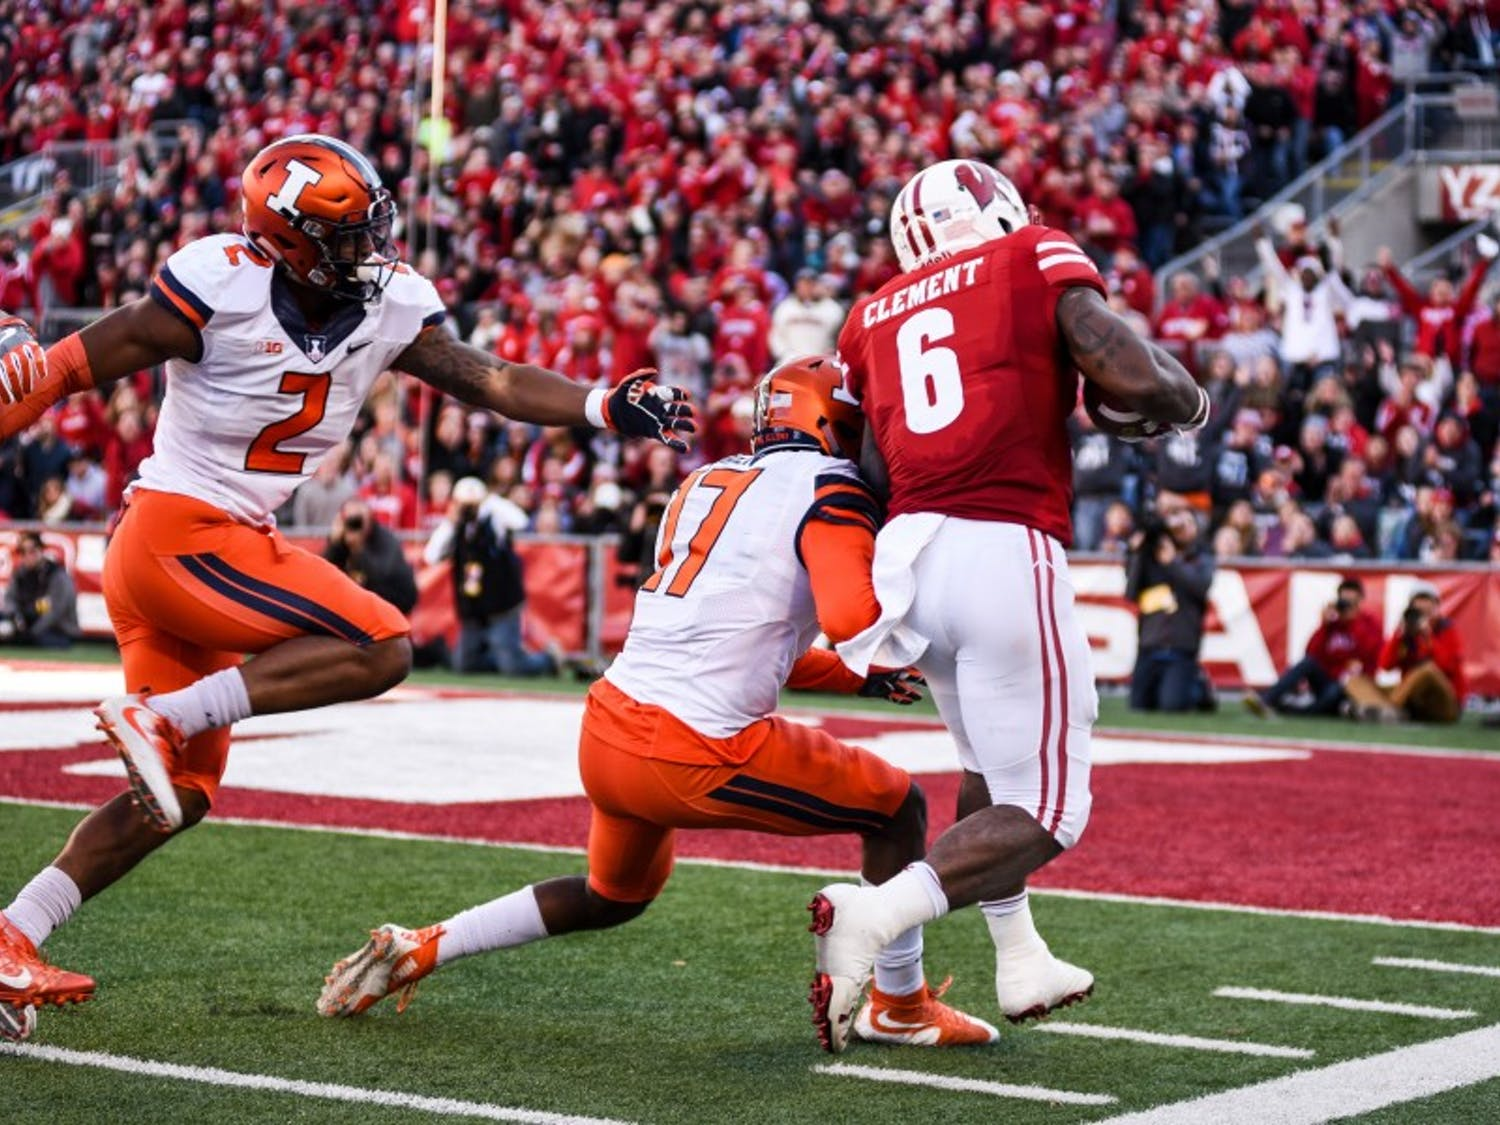 Clement dashes toward the end zone in Wisconsin's blowout victory over Illinois.